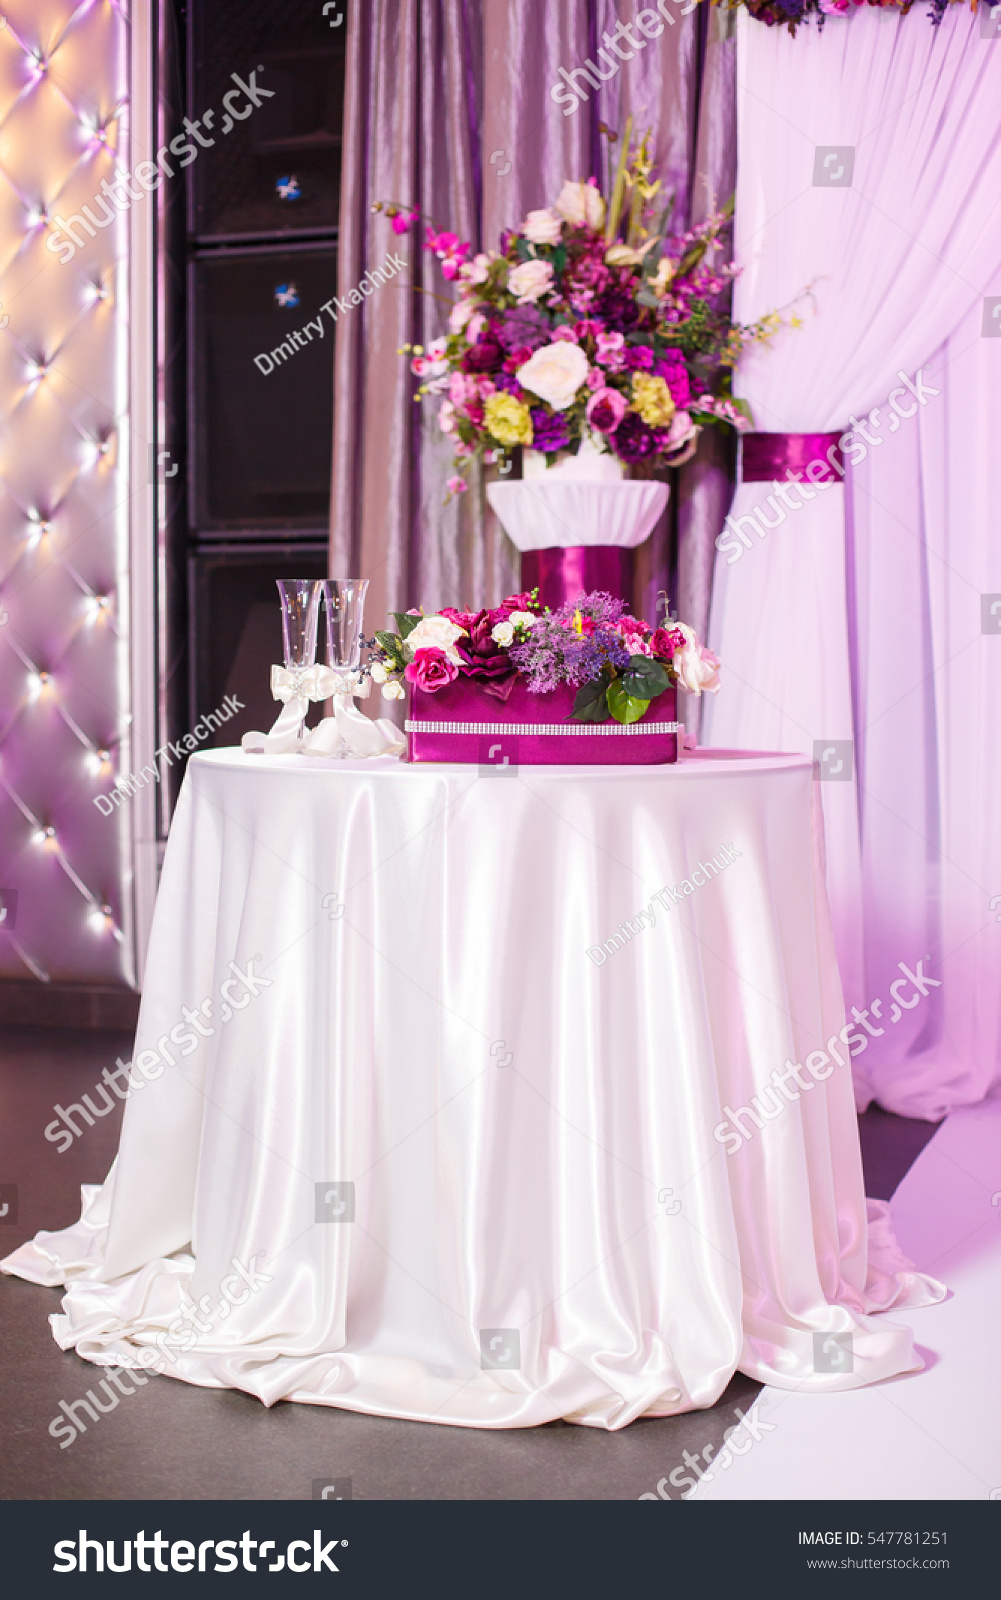 Beautiful wedding decorations for the wedding ceremony | EZ Canvas